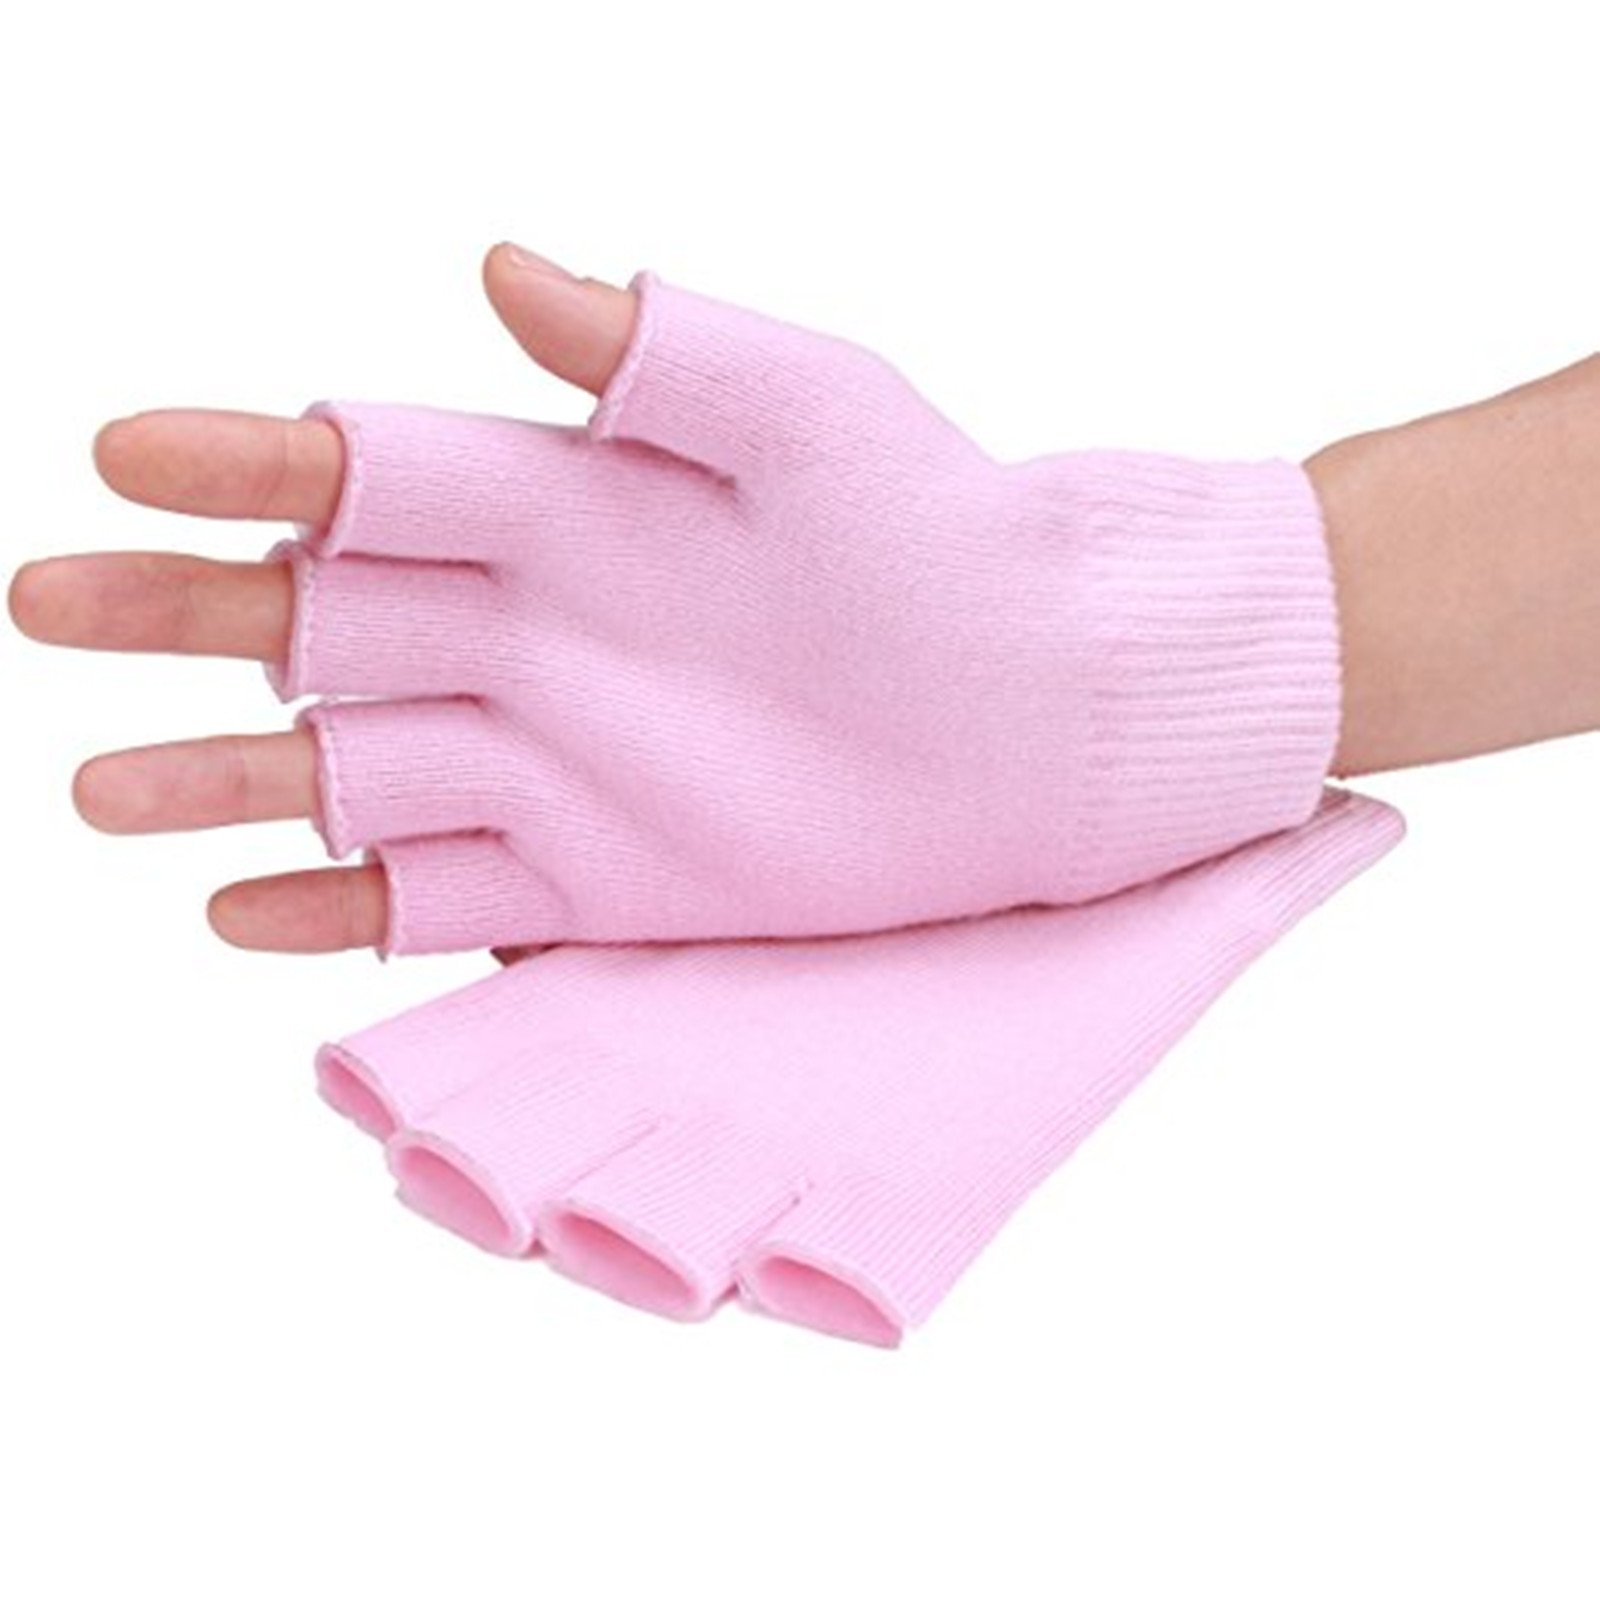 AnHua Gel Cotton Moisturizing Gloves, Half Finger Touch Screen Gloves, Moisturizing Vitamin and Oil Infused, Against Dry Hard Cracked and Rough Hands Fingers, Color Pink